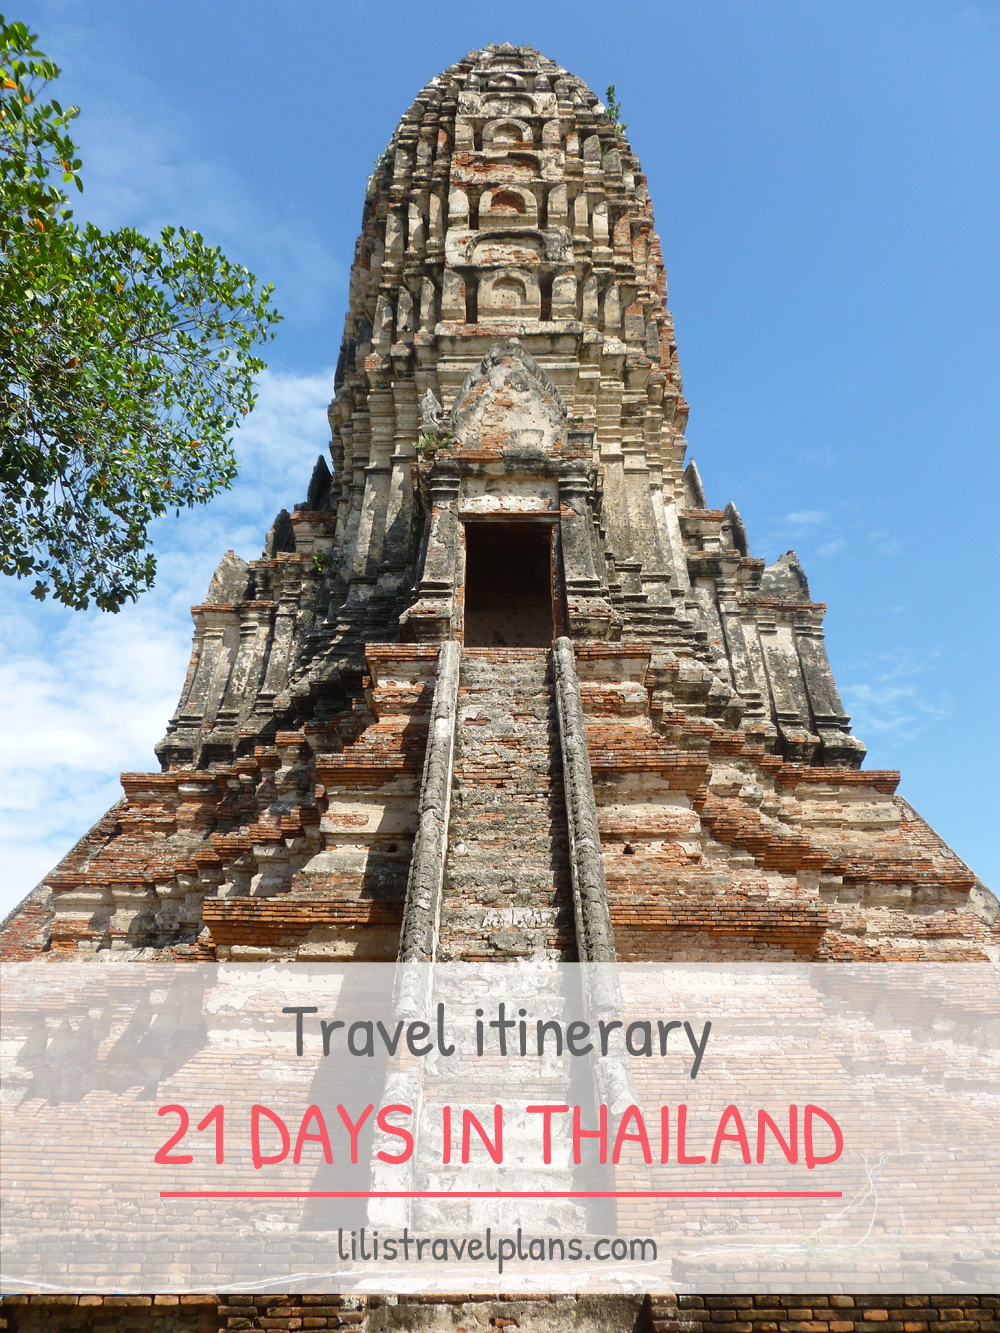 THREE WEEK ITINERARY THAILAND